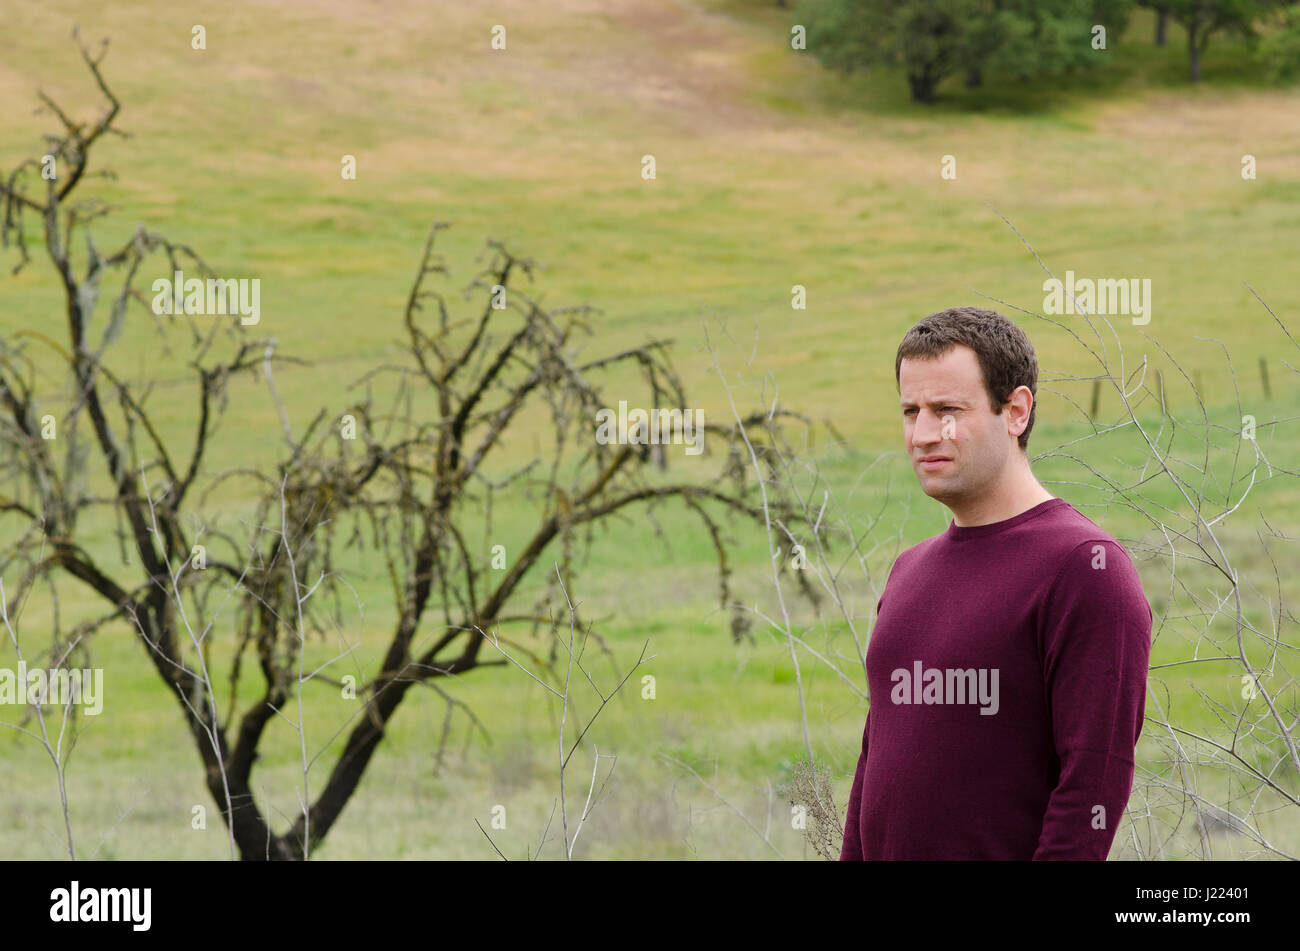 Man in deep thought in an open grassy field with a bare tree in the background. - Stock Image